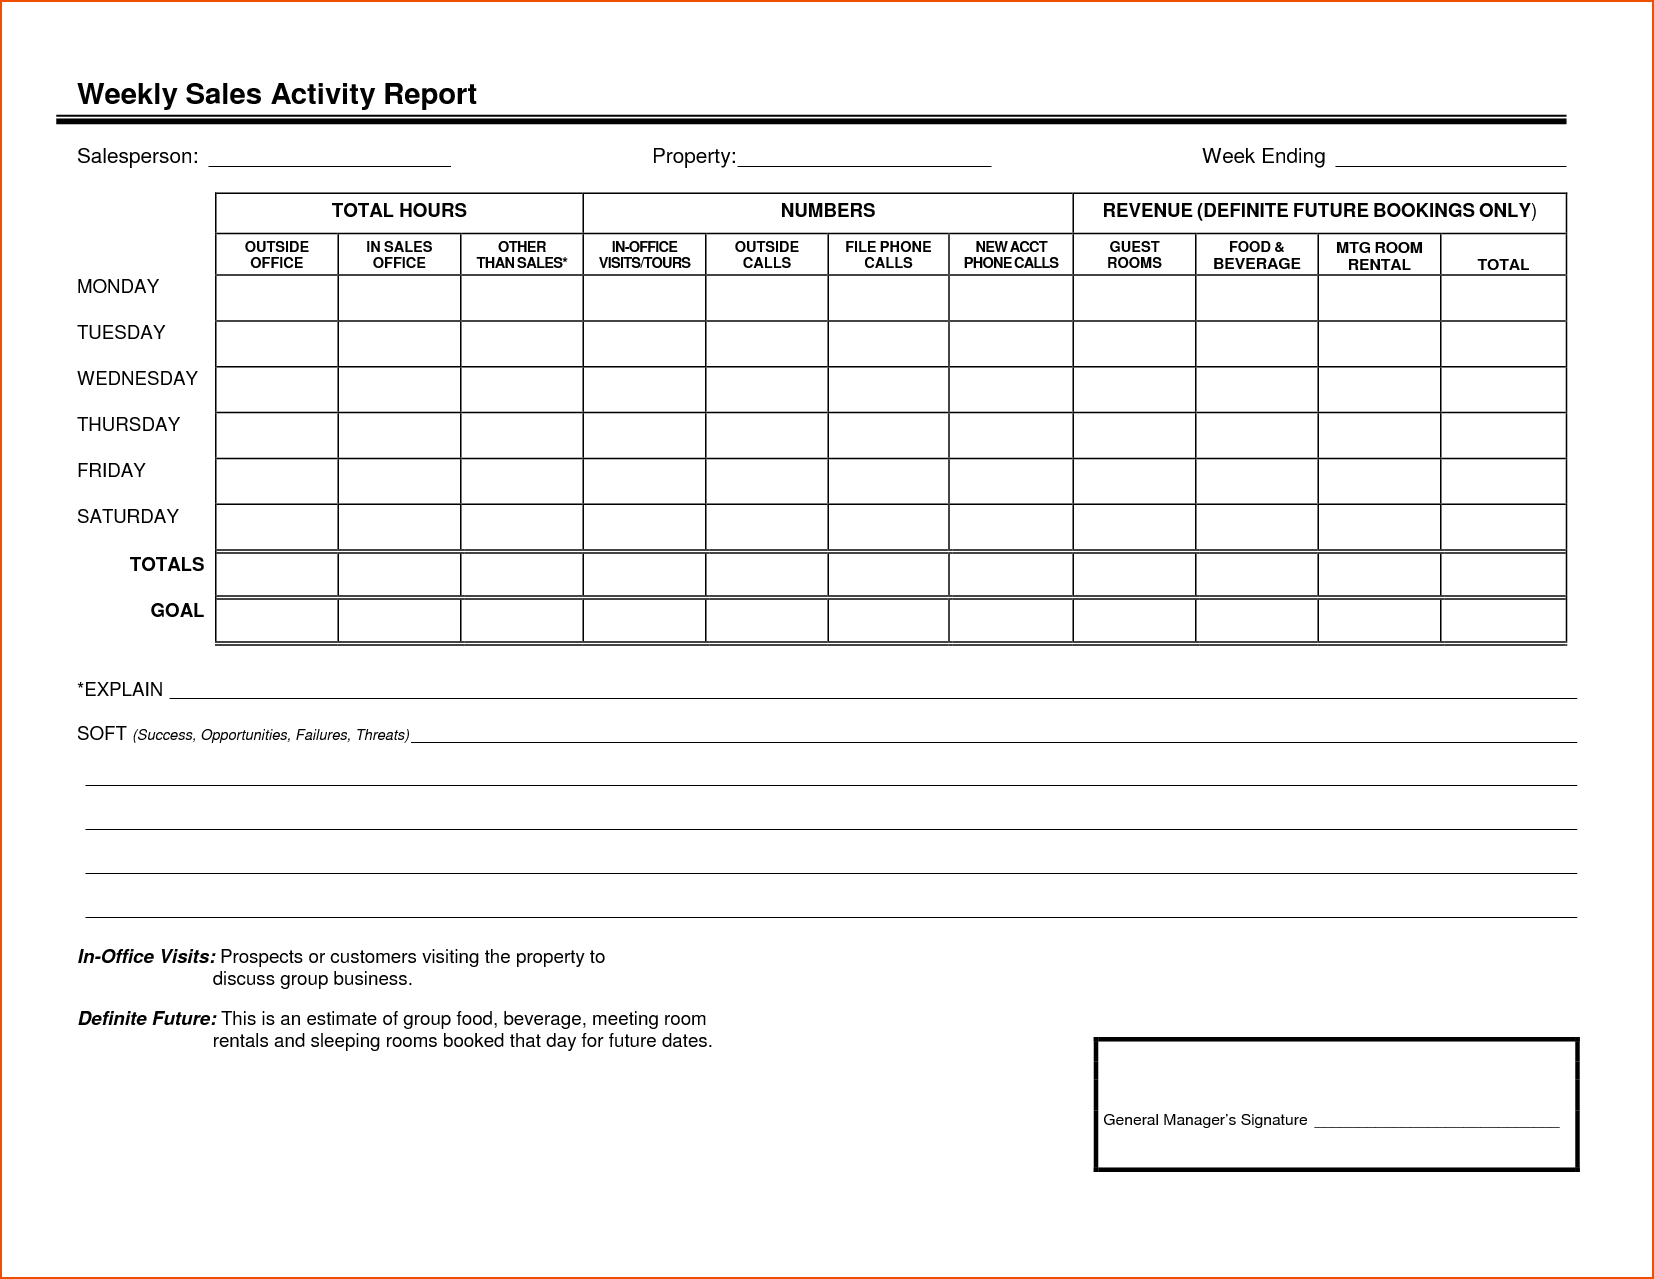 Examples Of Weekly Sales Report Format In Excel Within Weekly Sales Report Format In Excel Letter